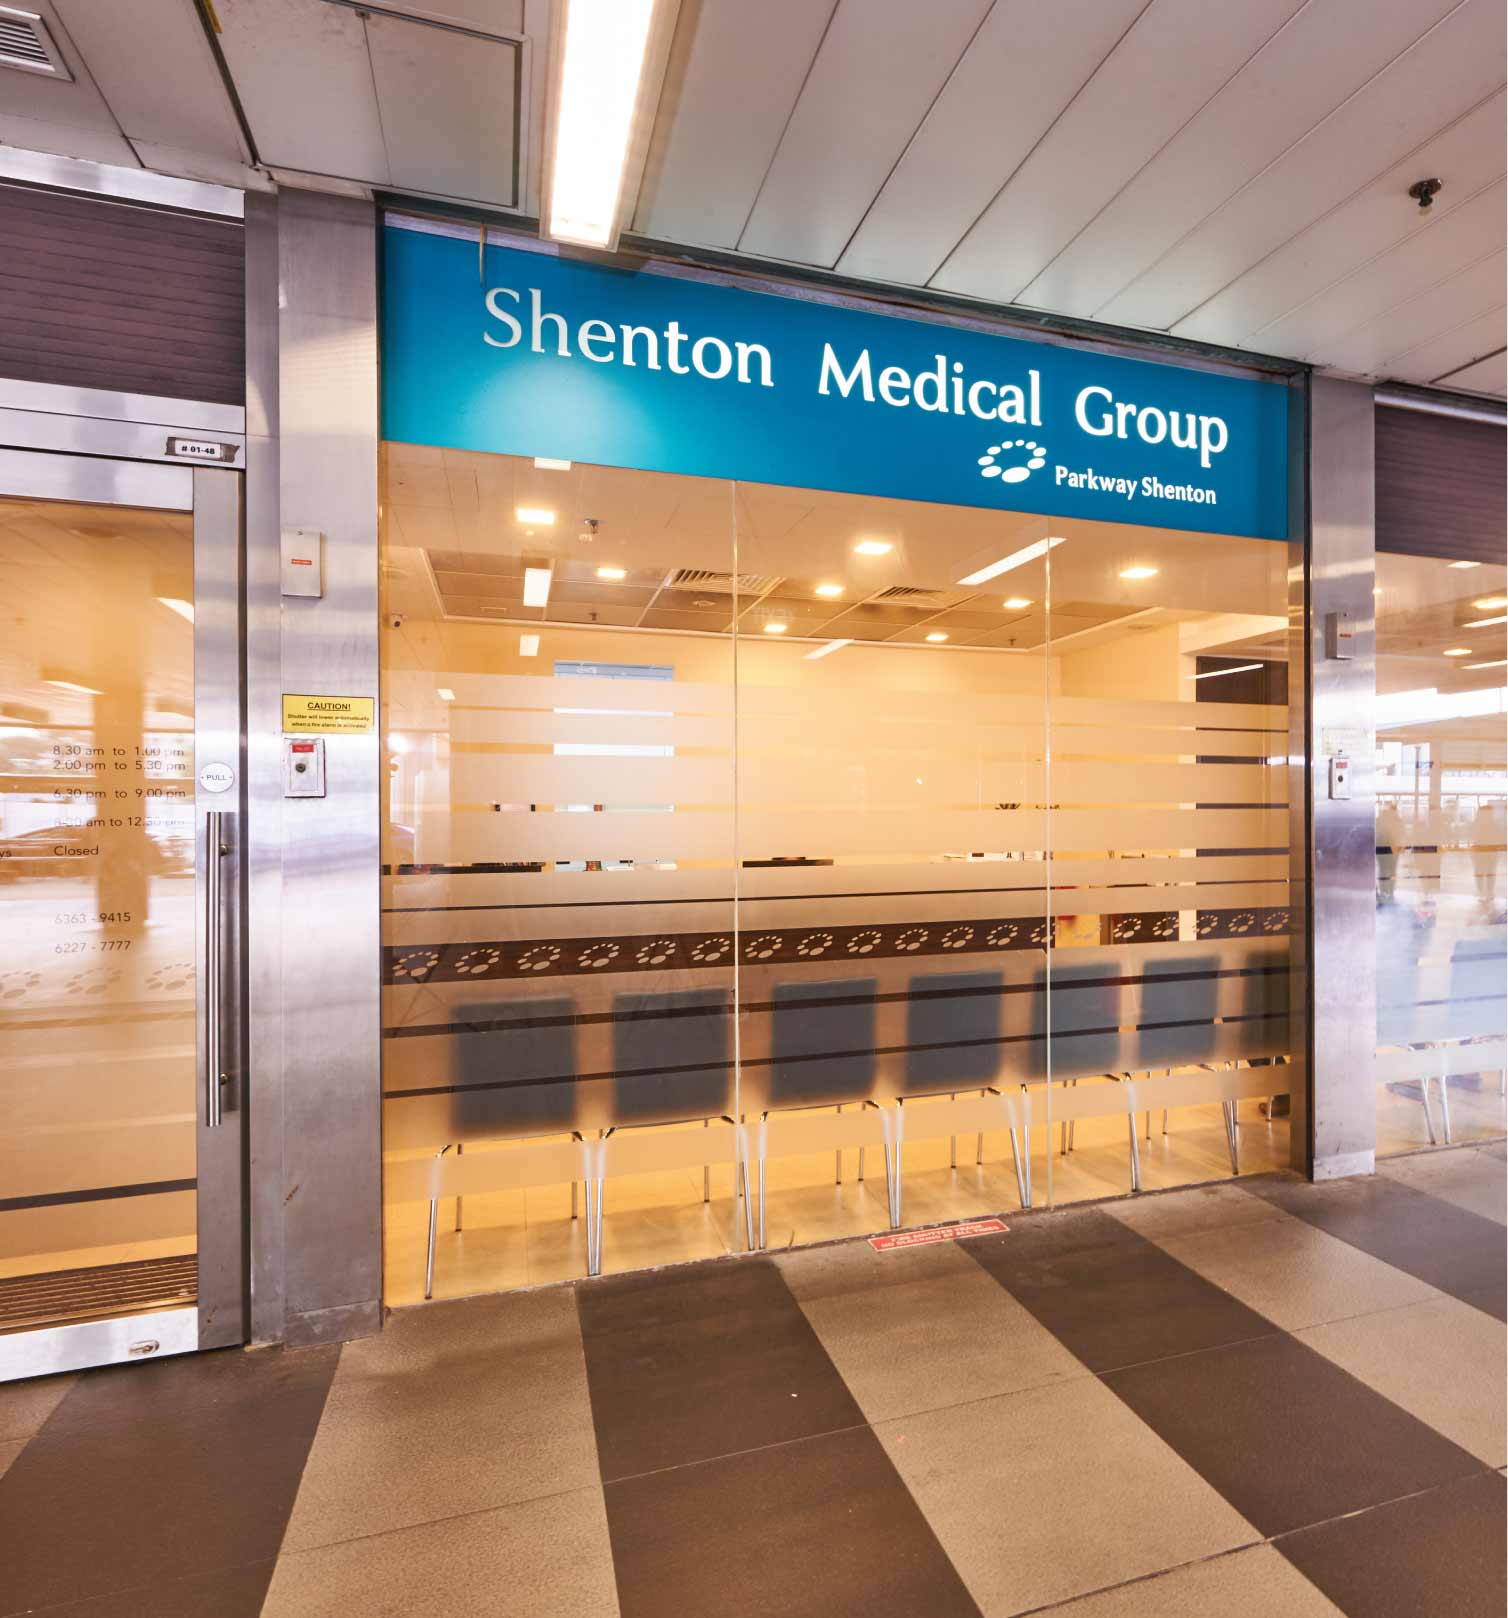 Woodlands MRT - Shenton Medical Group